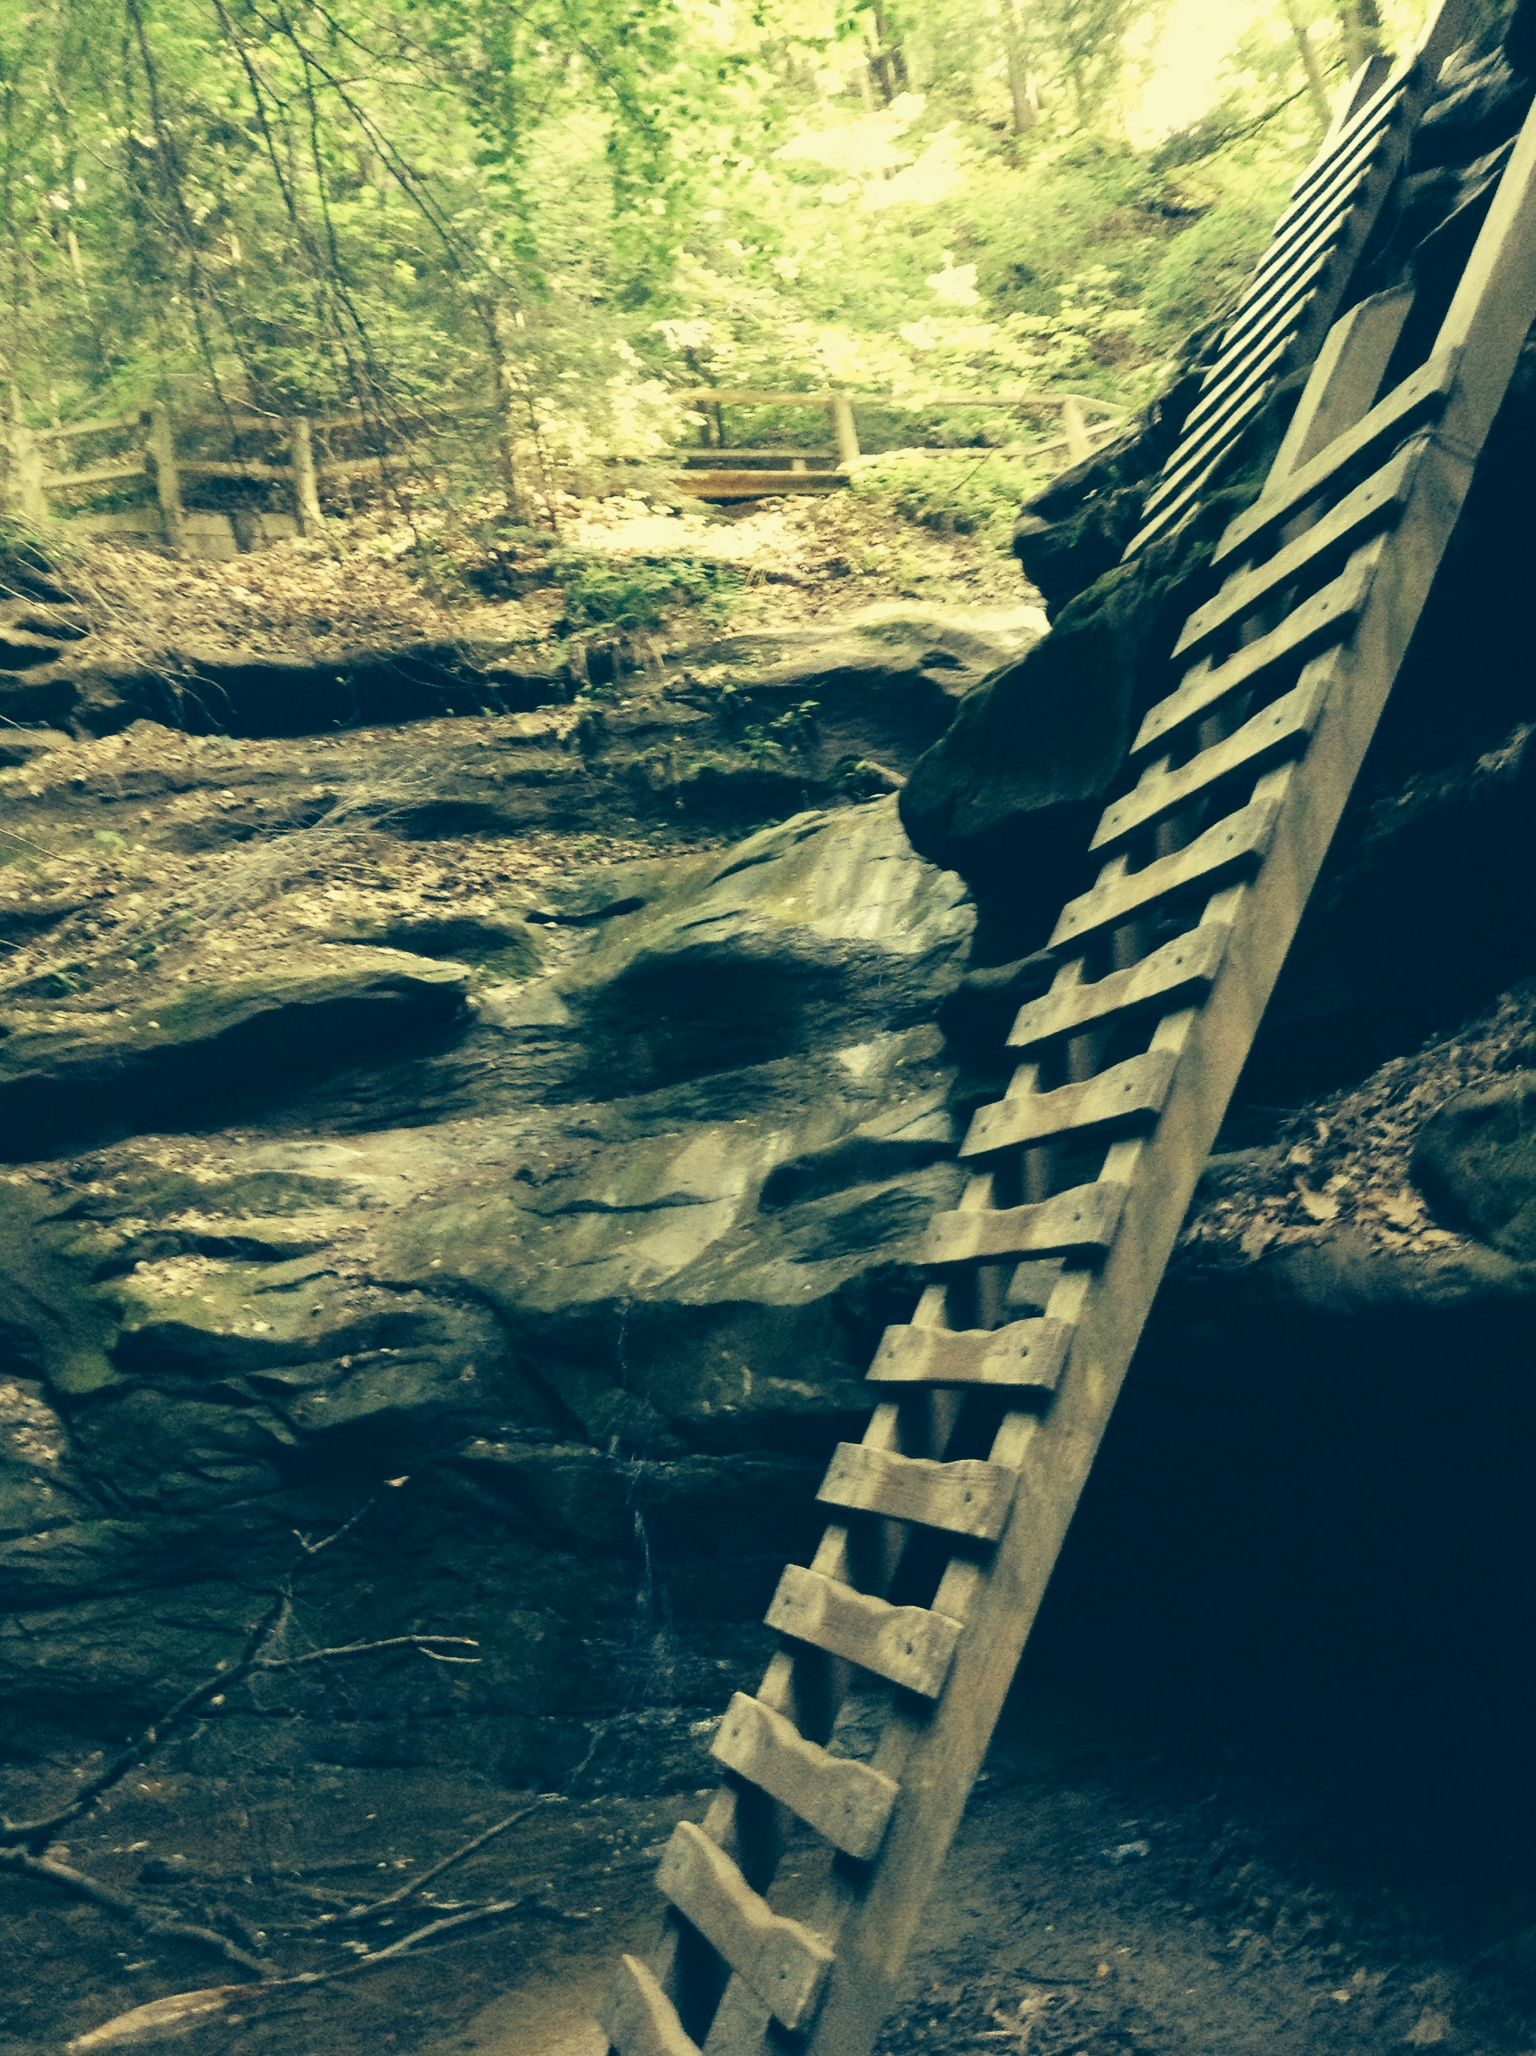 The ladders at Trail 3 at Turkey Run State Park in Indiana (May, 2014)